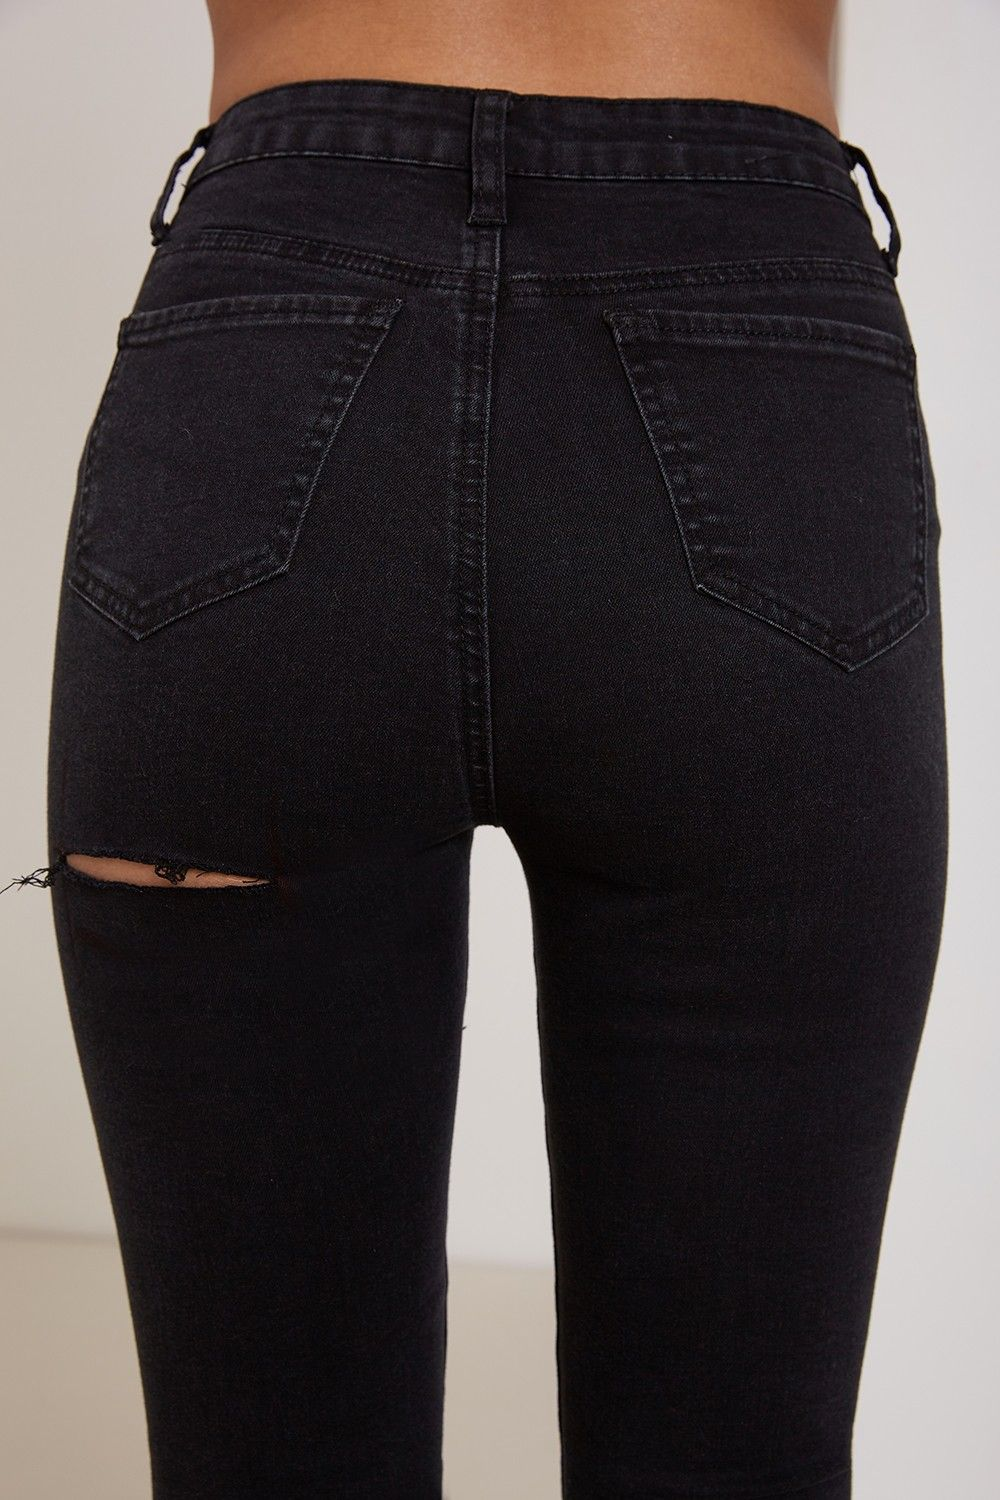 b380811c49946 Karlie High Waisted Bum Rip Skinny Jeans Black - Denim - Shop by Category -  Clothing